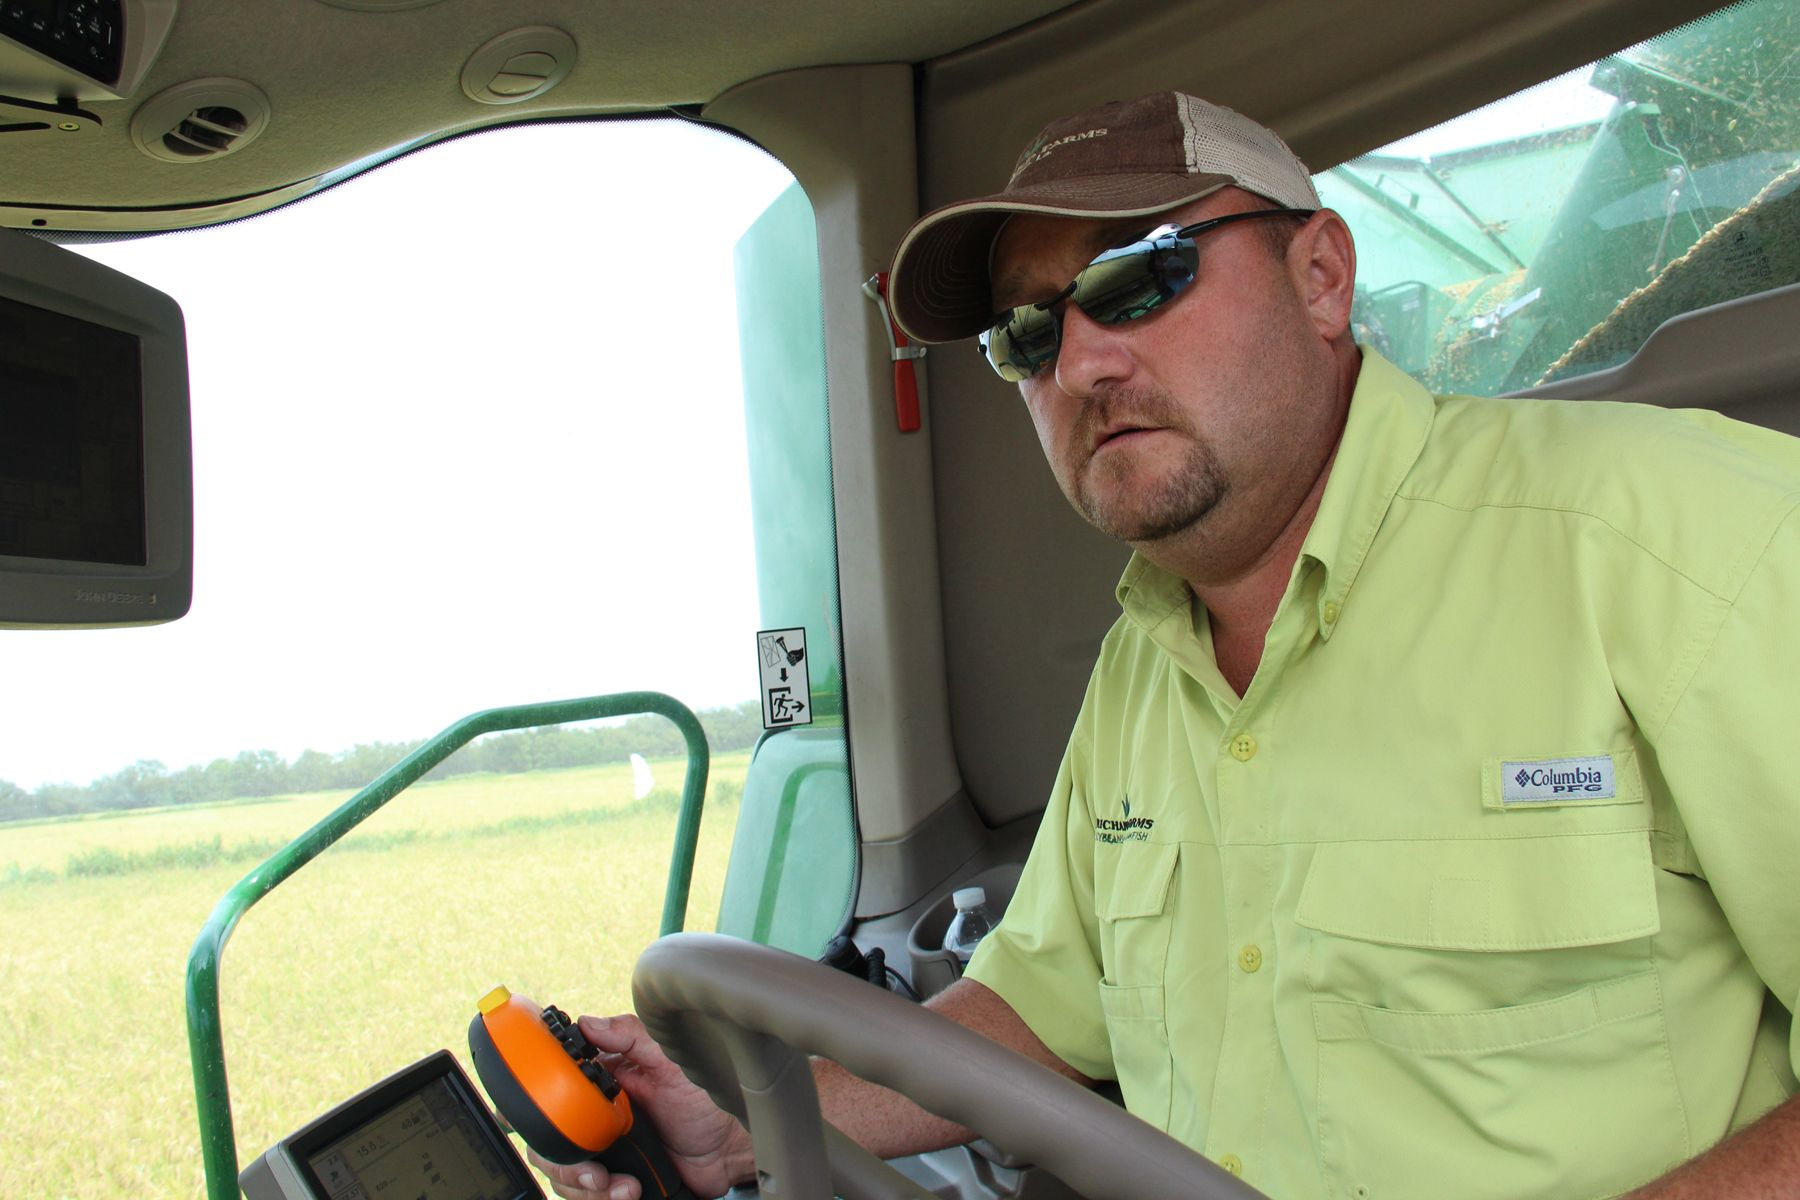 Man wearing yellow shirt and sunglasses drives green combine